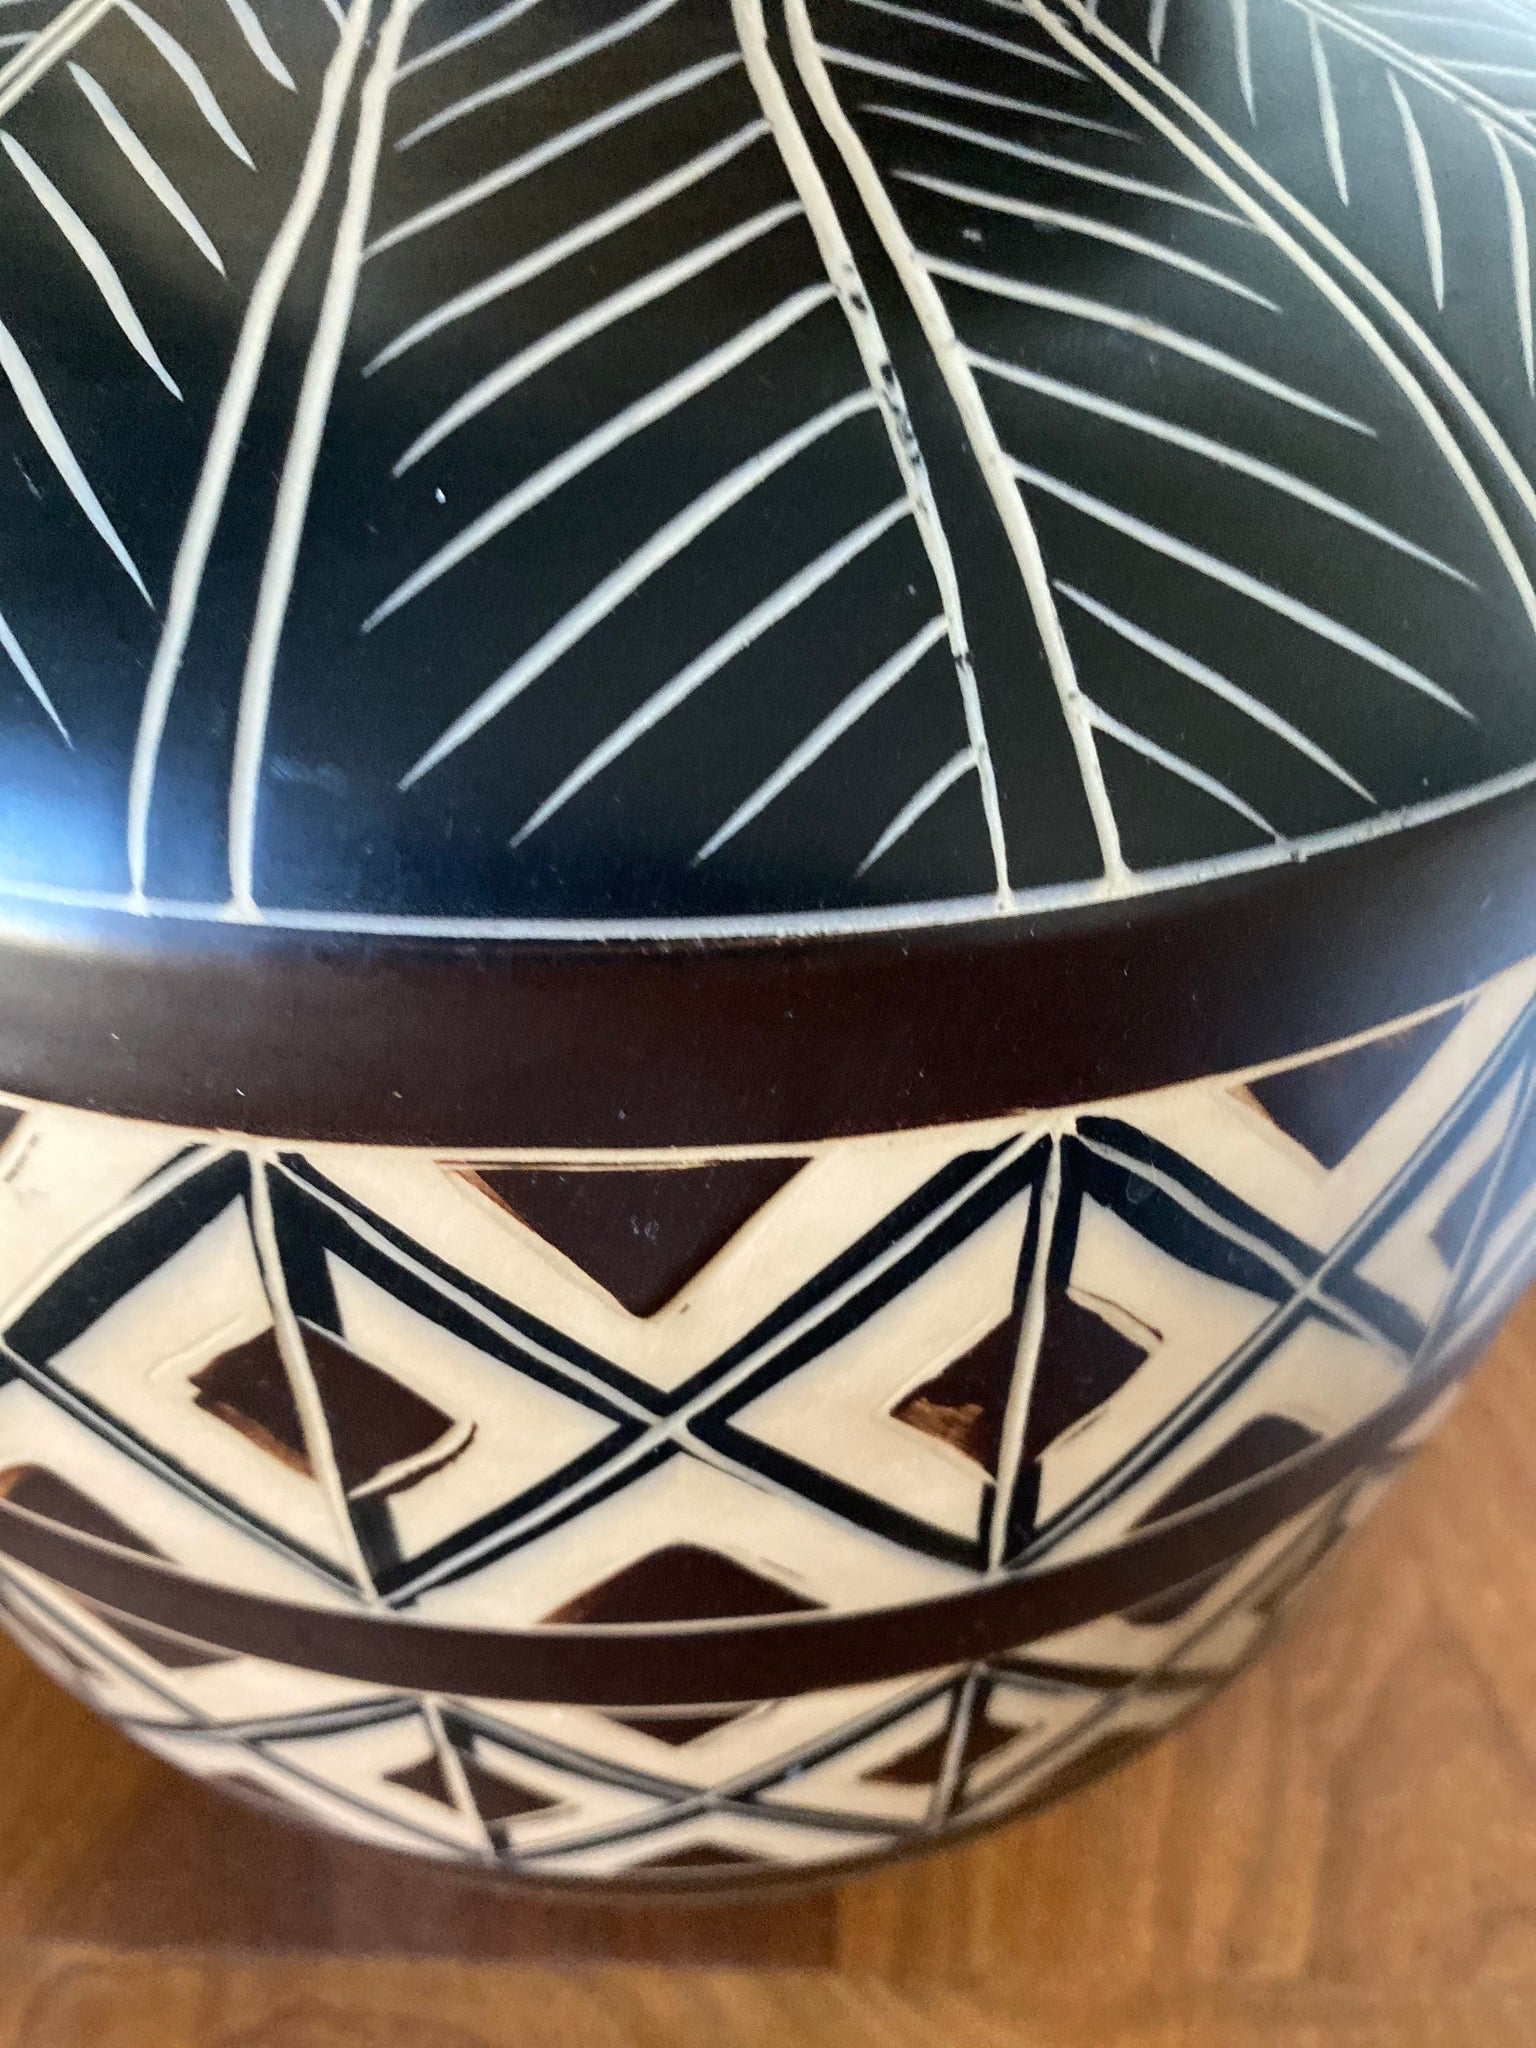 1980's Danish Modern Incised Geometric Pottery Lamp (Shade not included)